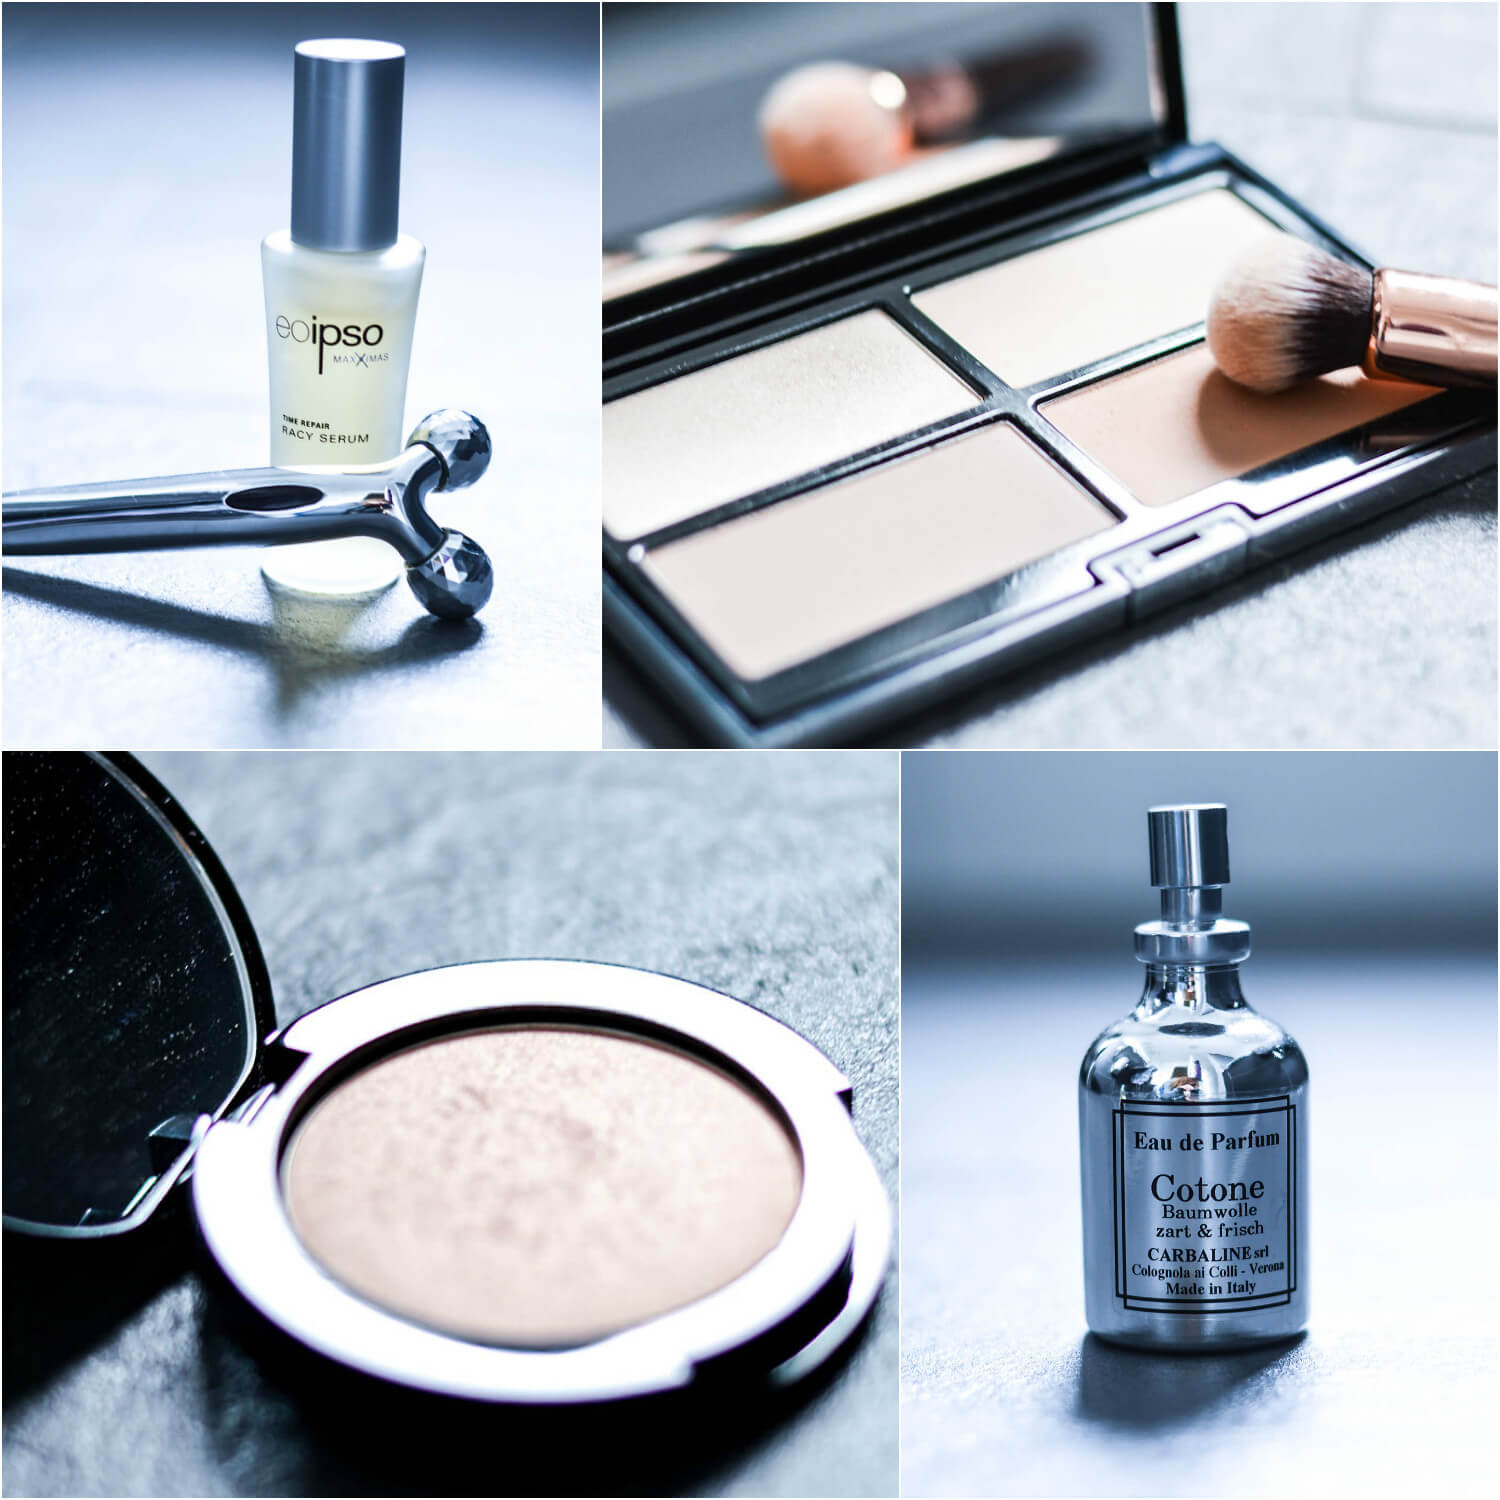 Kationette-lifestyleblog-beauty-Lifestyle-Contouring-Serum-Perfume-Primer-Highlighter-producttest